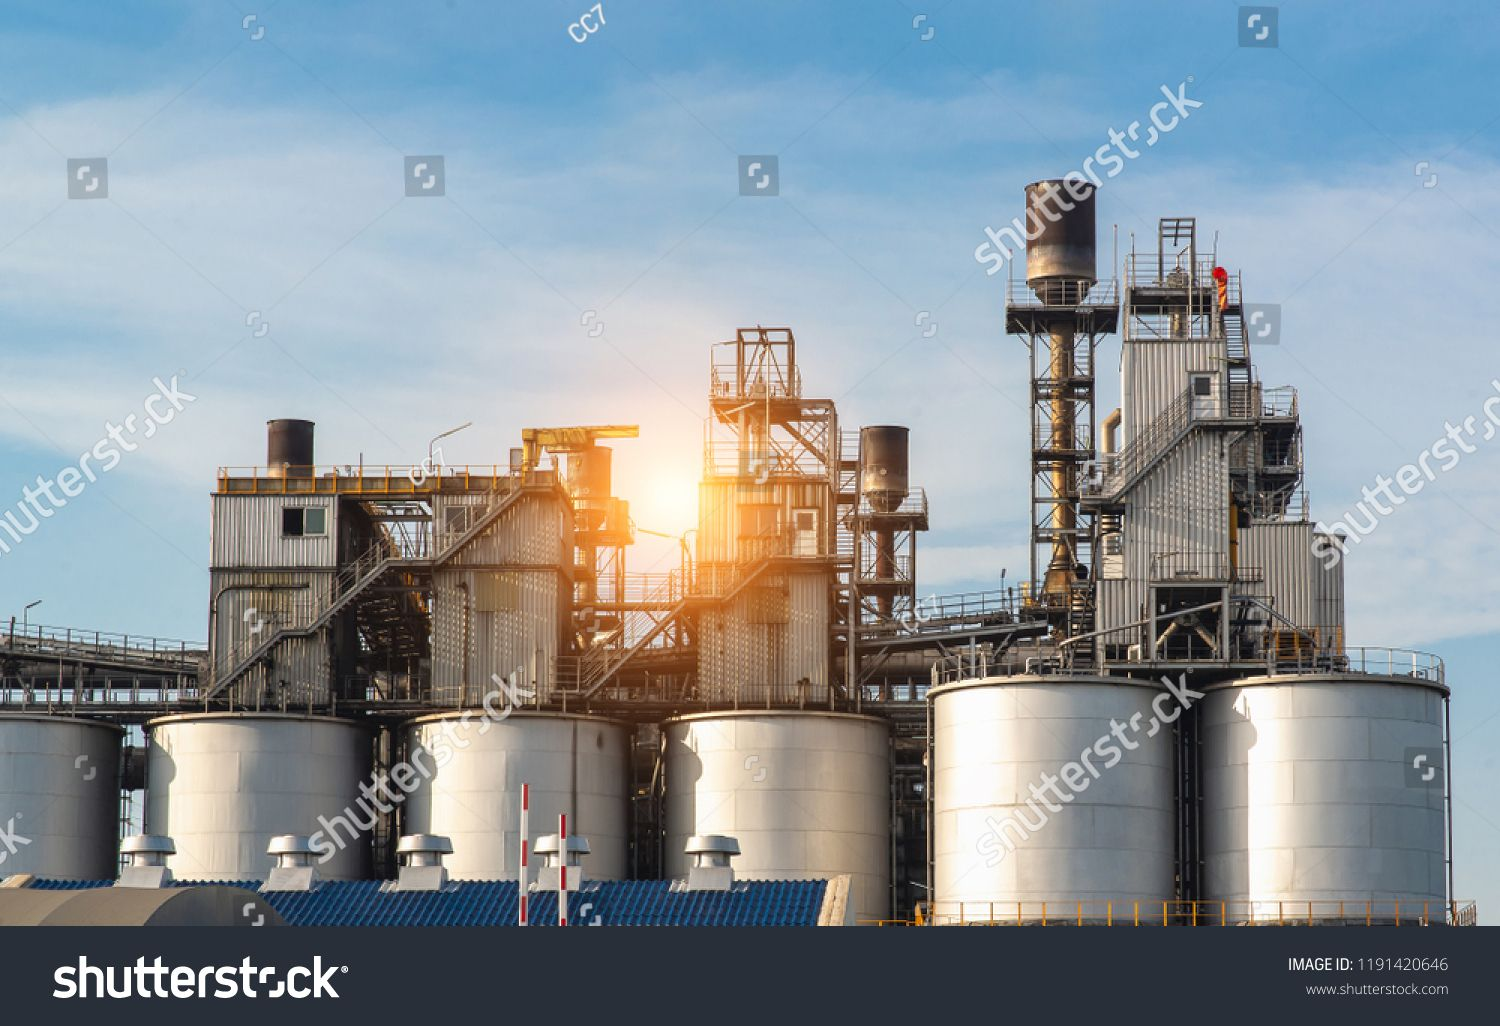 Storage And The Factory Of The Chemicals In Oil And Gas Industry Area Royalty Free Image Photo In 2020 Gas Industry Oil And Gas Stock Photos